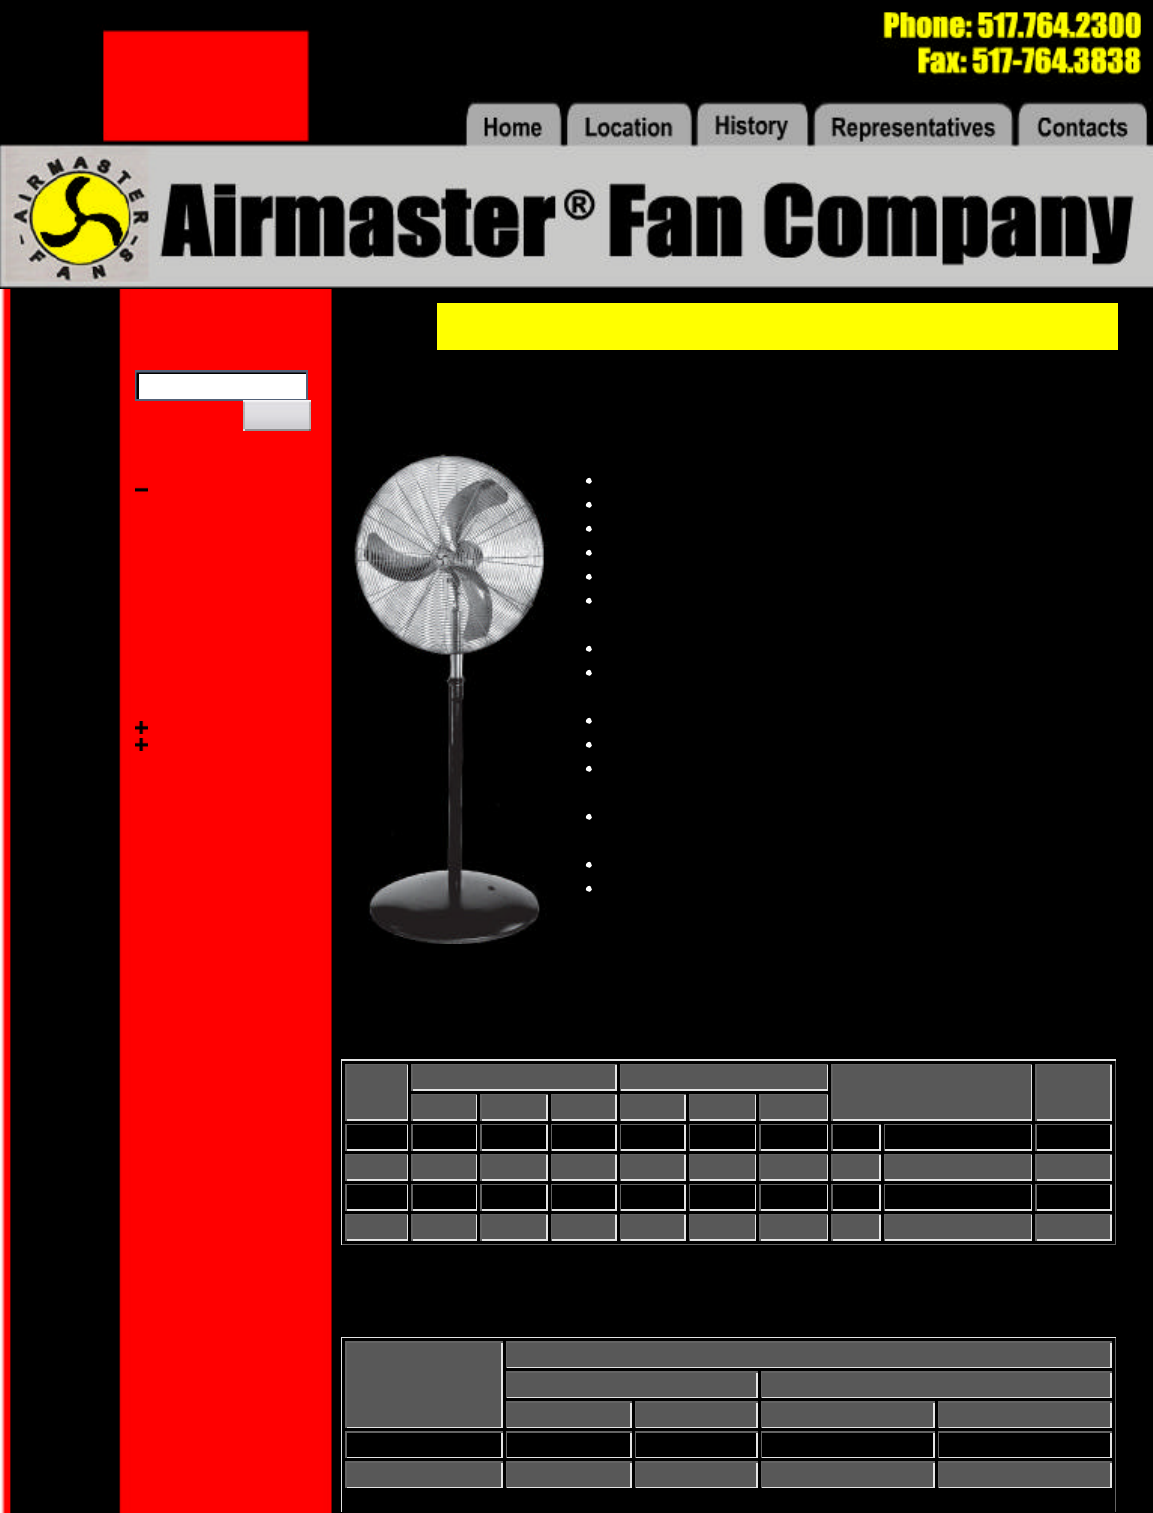 Airmaster Fan Company Industrial Fans And Blowers Jackson, Michigan